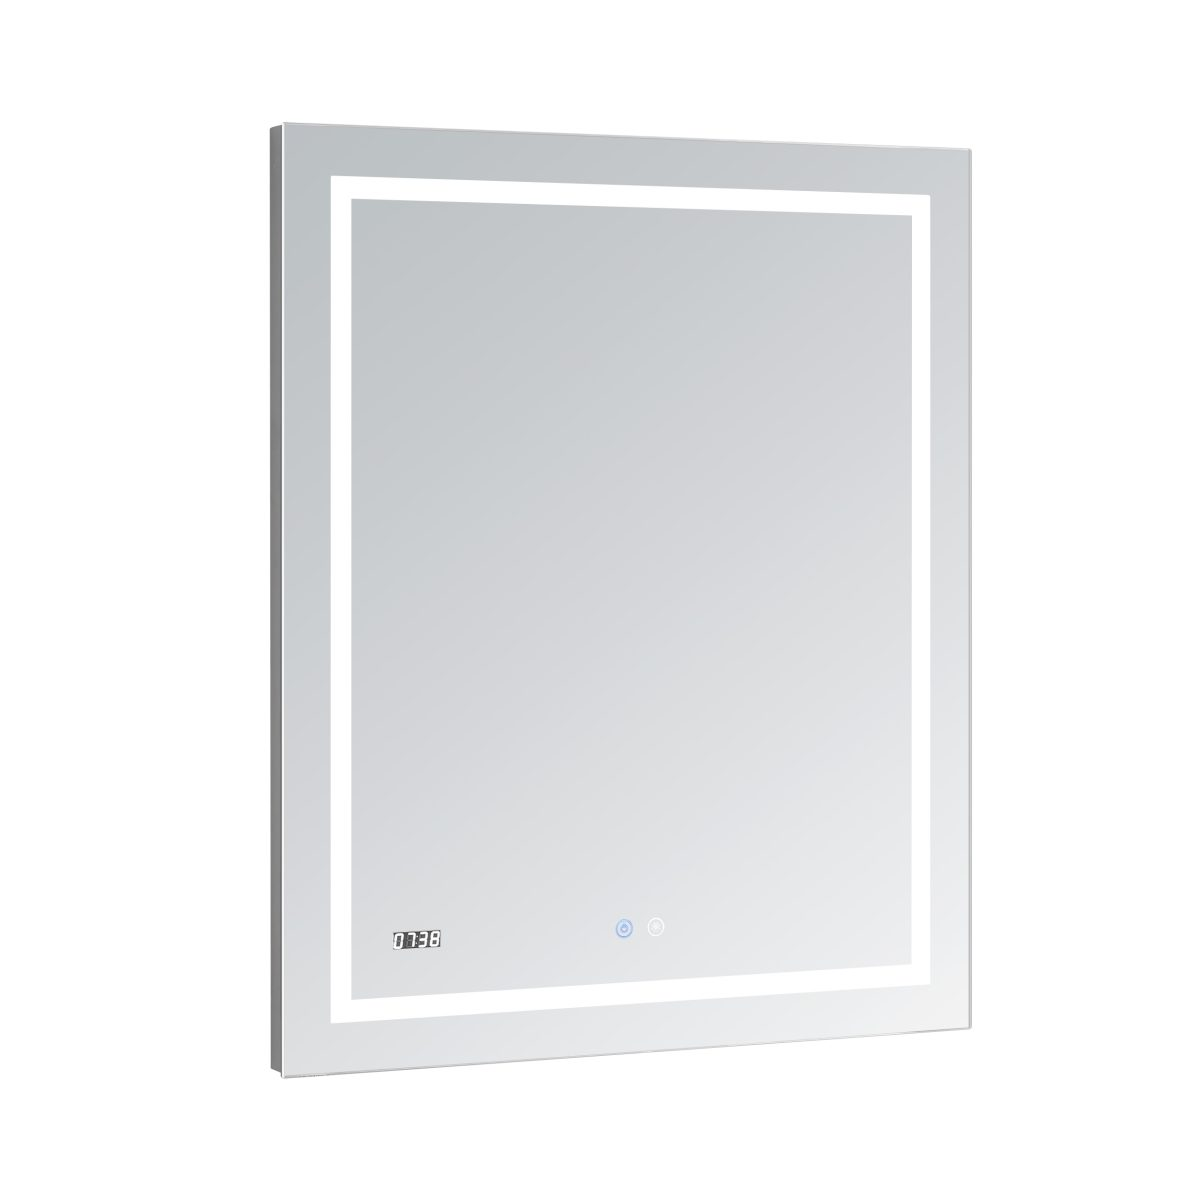 AQUADOM Daytona 24 inches x 30 inches Wall Mounted LED Lighted Silver Mirror for Bathroom